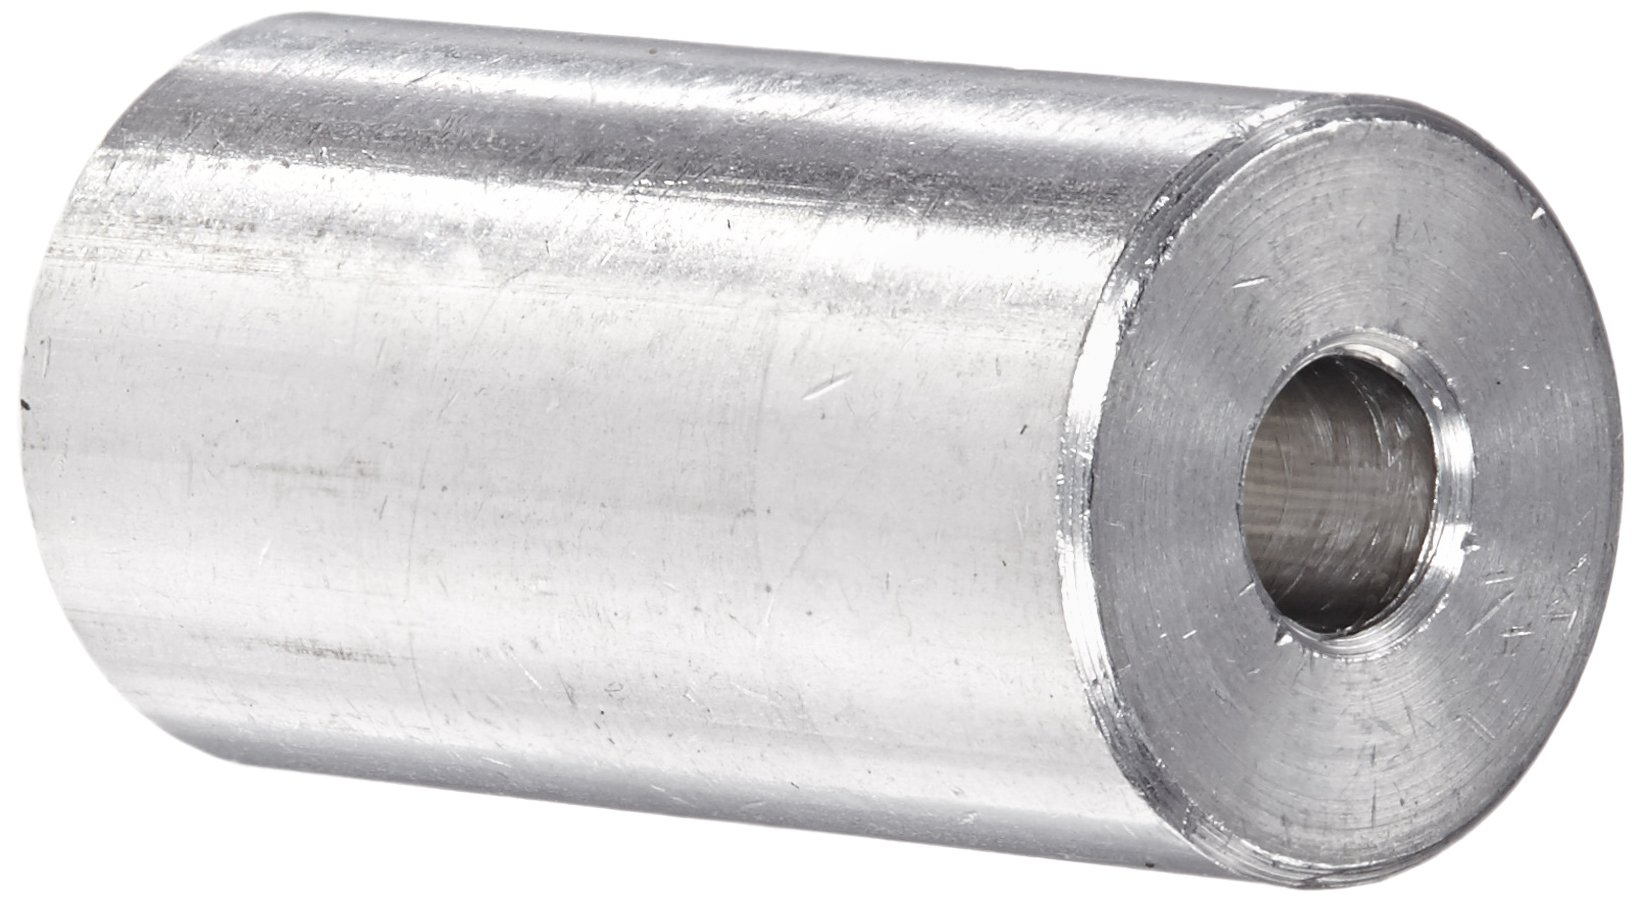 Round Spacer, Aluminum, Plain Finish, #8 Screw Size, 1/2'' OD, 0.166'' ID, 1'' Length, Made in US (Pack of 5)